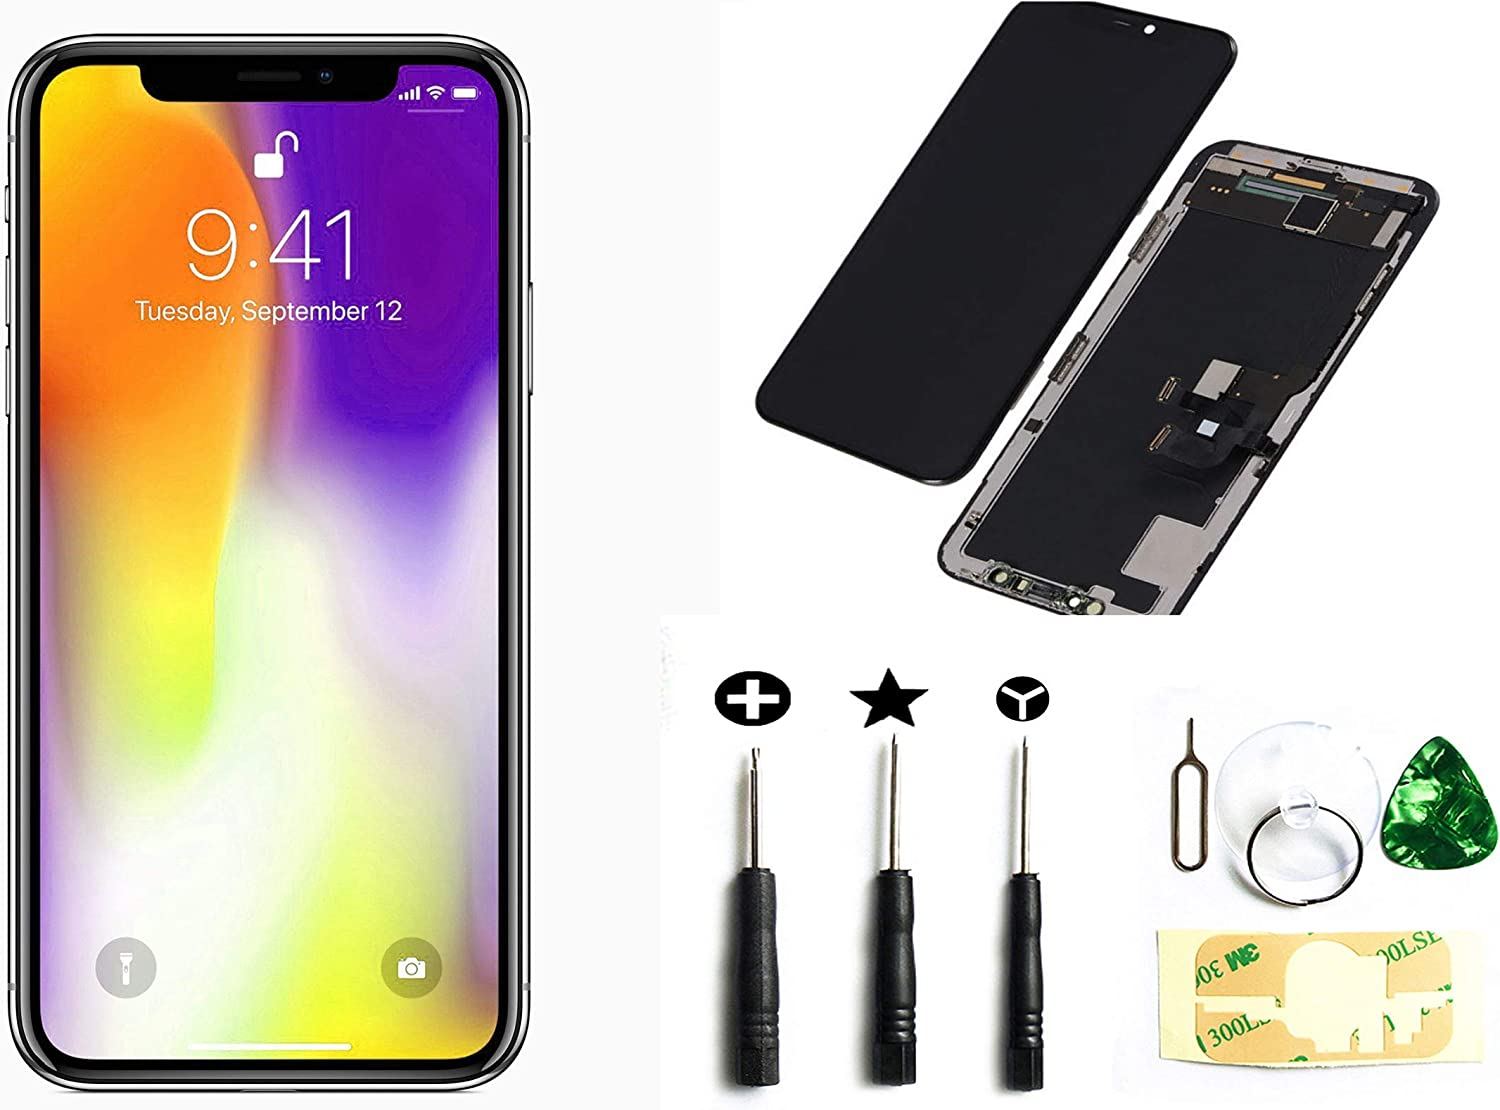 Select US for iPhone X 10 5.8 inch Black Retina LCD Touch Screen Digitizer Glass Replacement Full Assembly